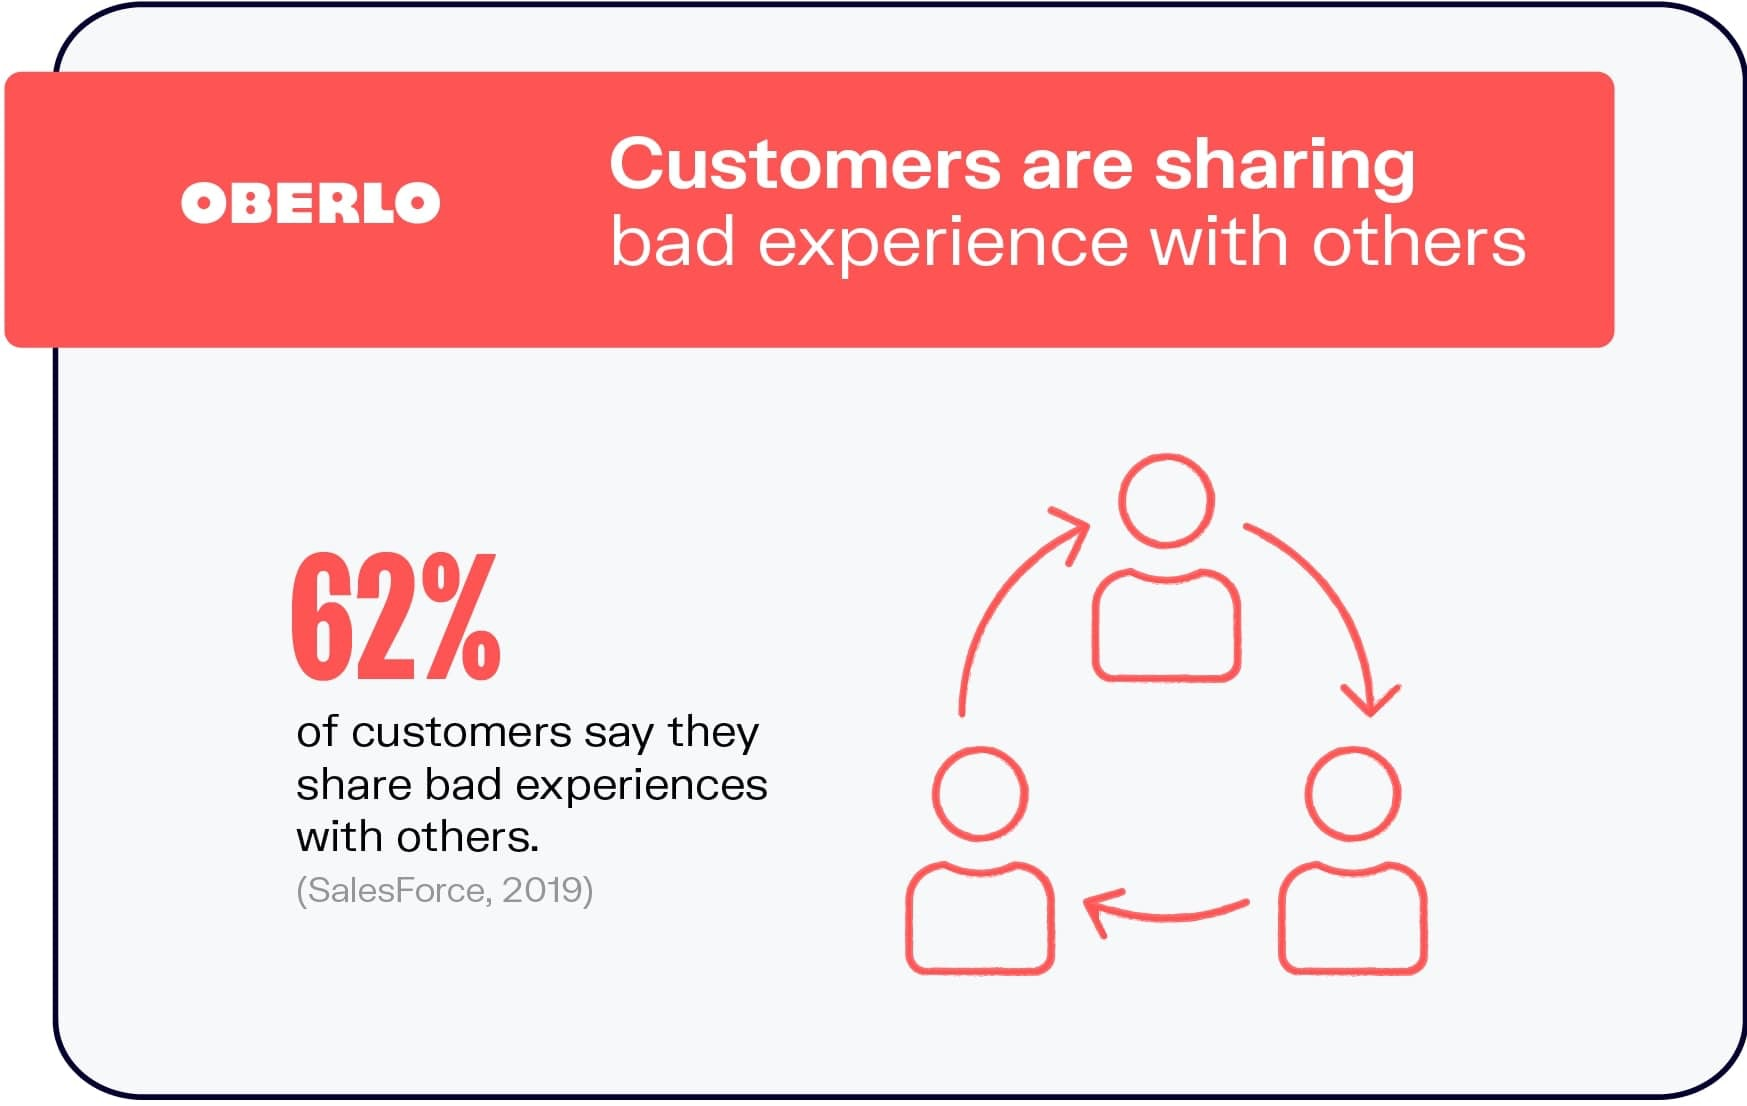 Poor Customer Service Experiences Are Shared